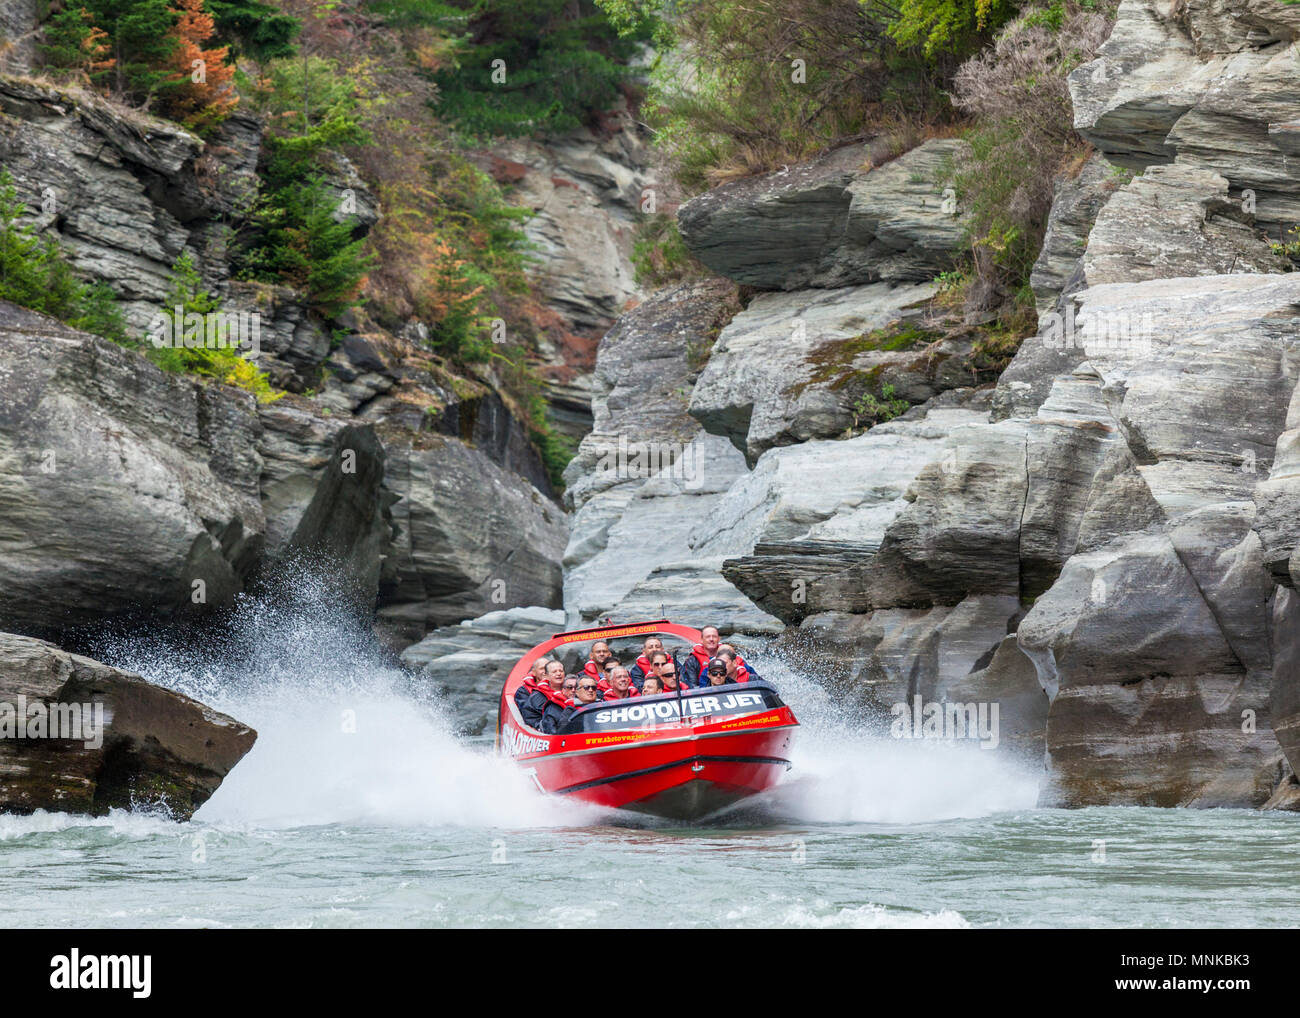 shotover jet boating on the shotover river through narrow canyon walls near queenstown new zealand New Zealand queenstown New Zealand South Island - Stock Image